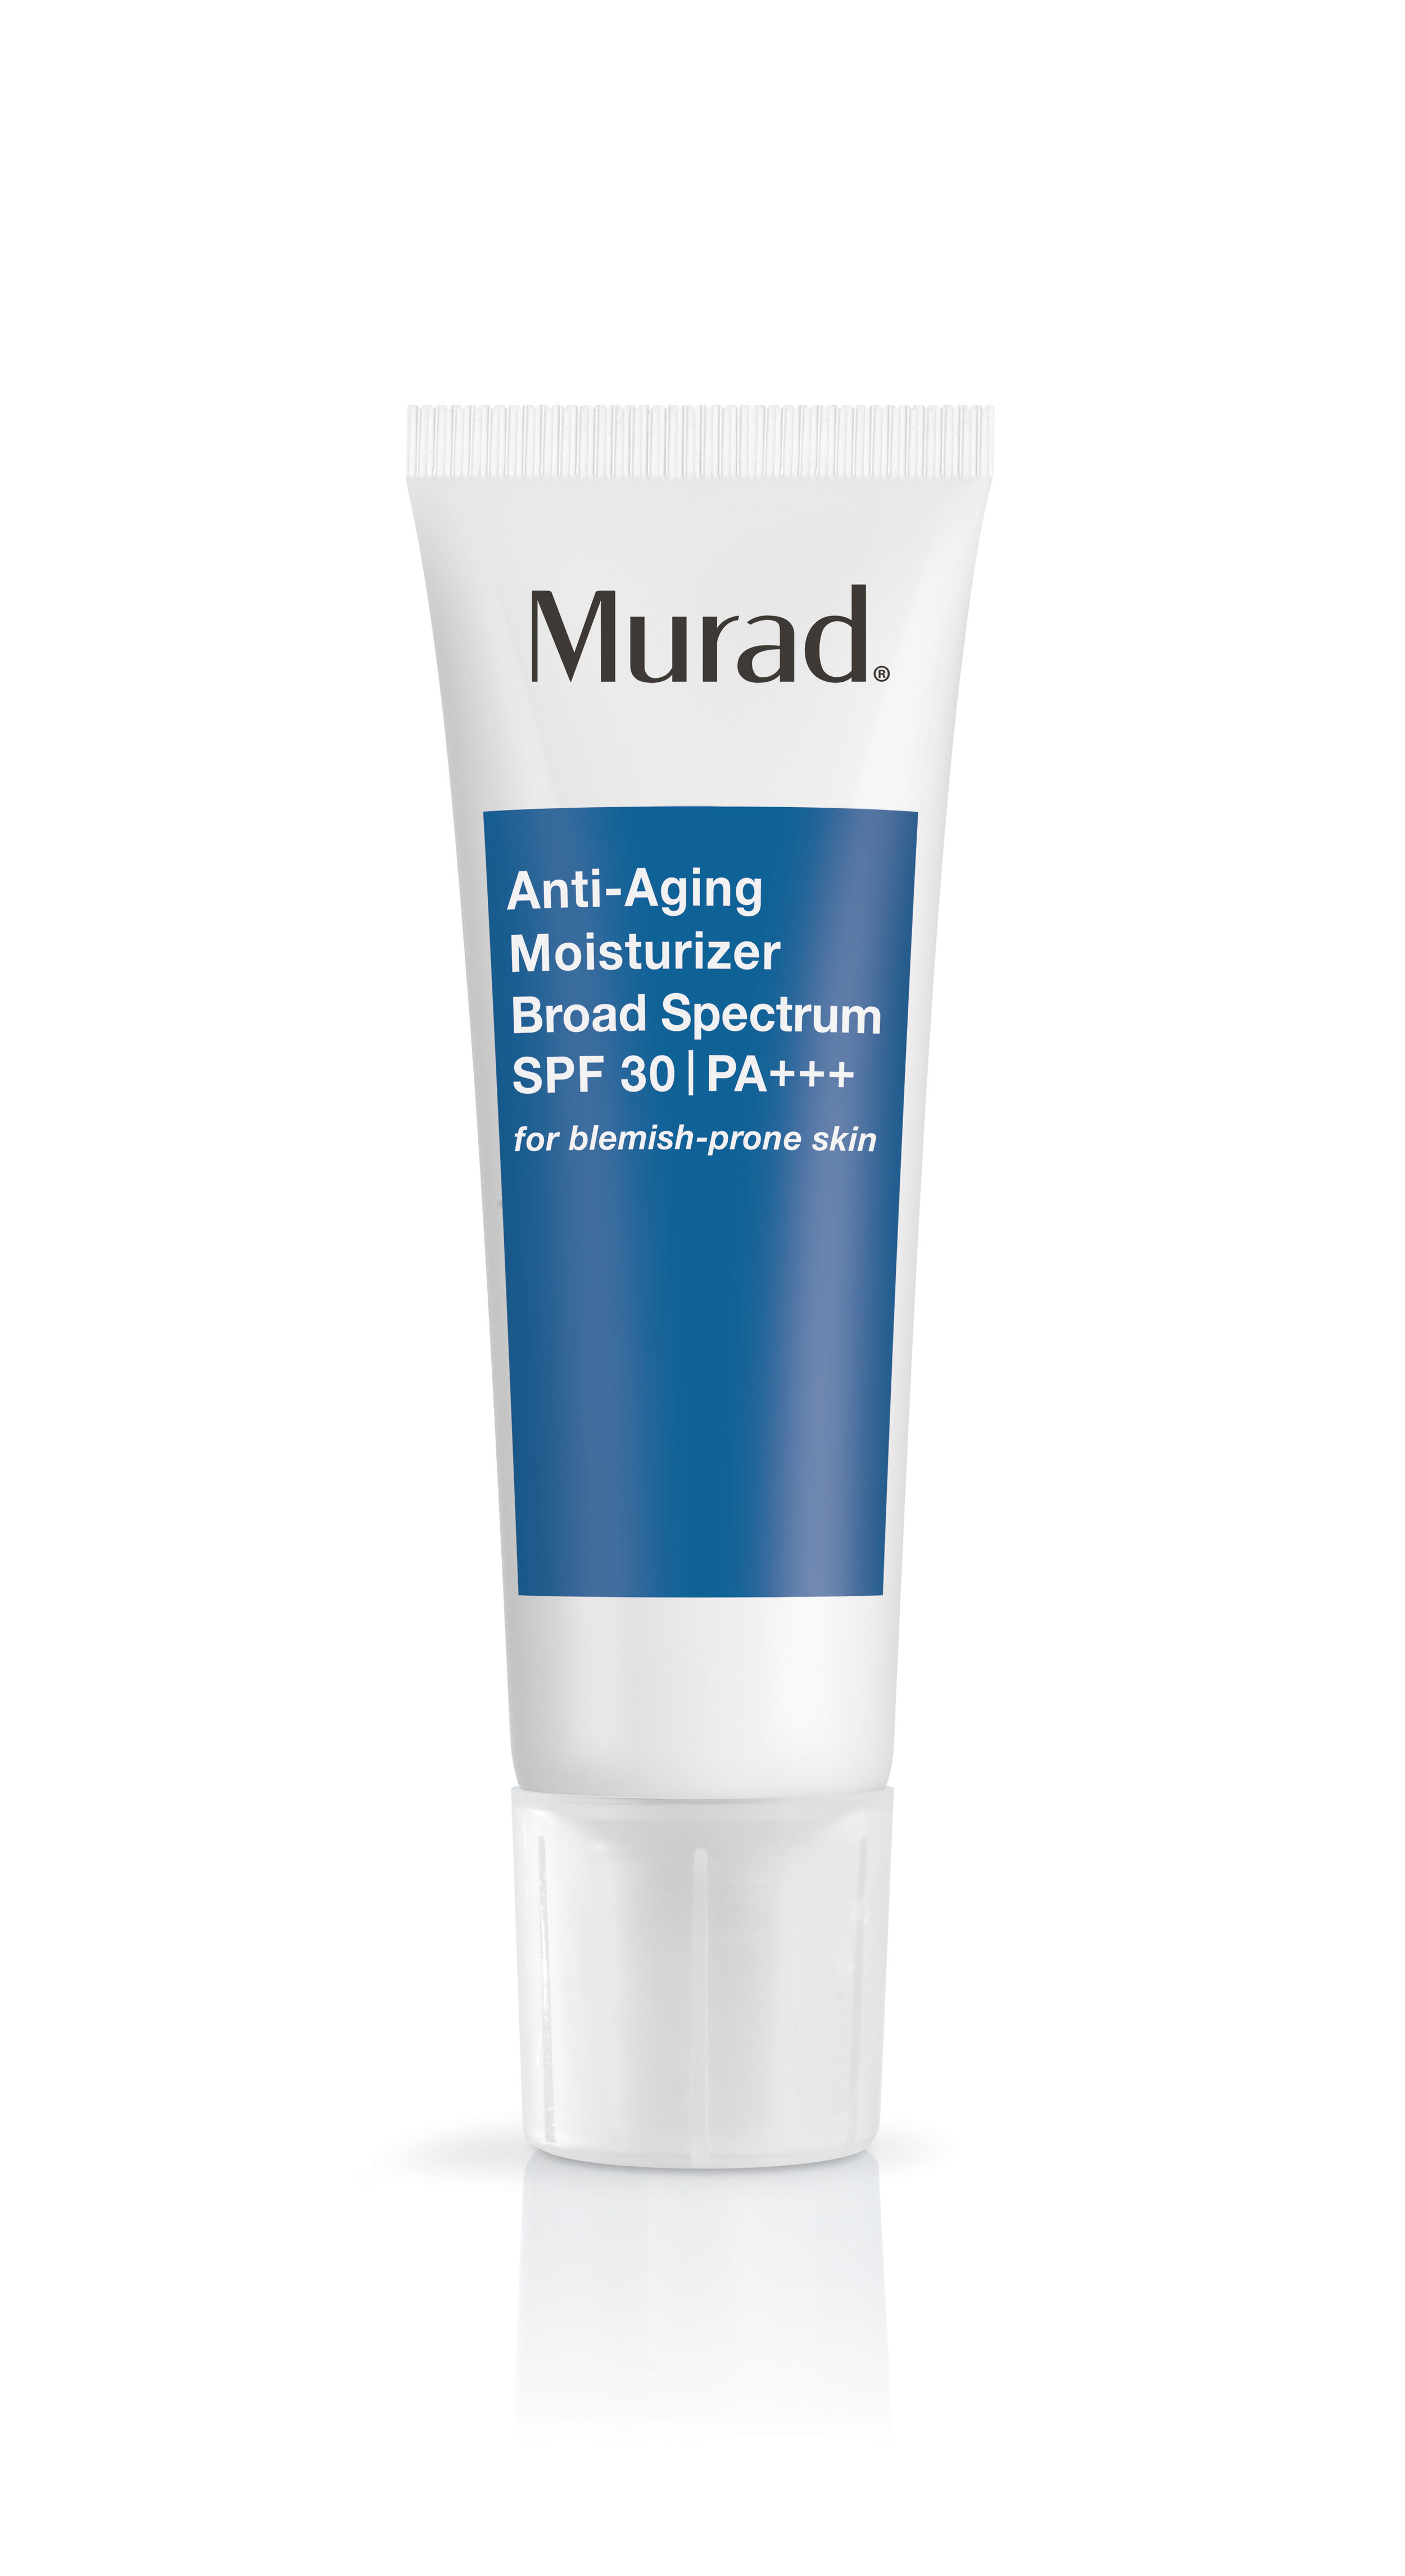 MURAD Anti-Aging Moisturizer WITH SPF30, AVAILABLE AT MURAD